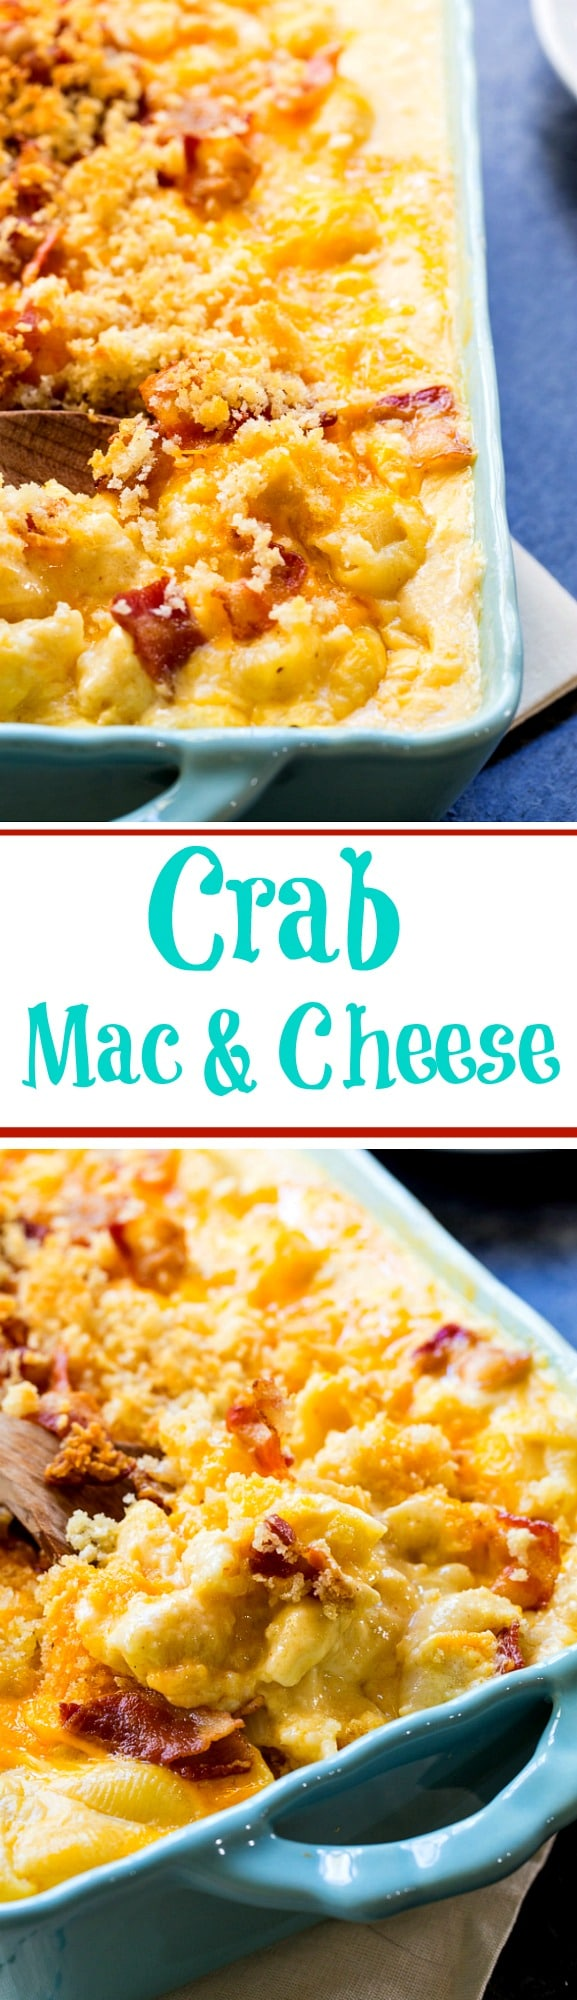 Crab Mac and Cheese is super creamy and rich with crumbled bacon on top!